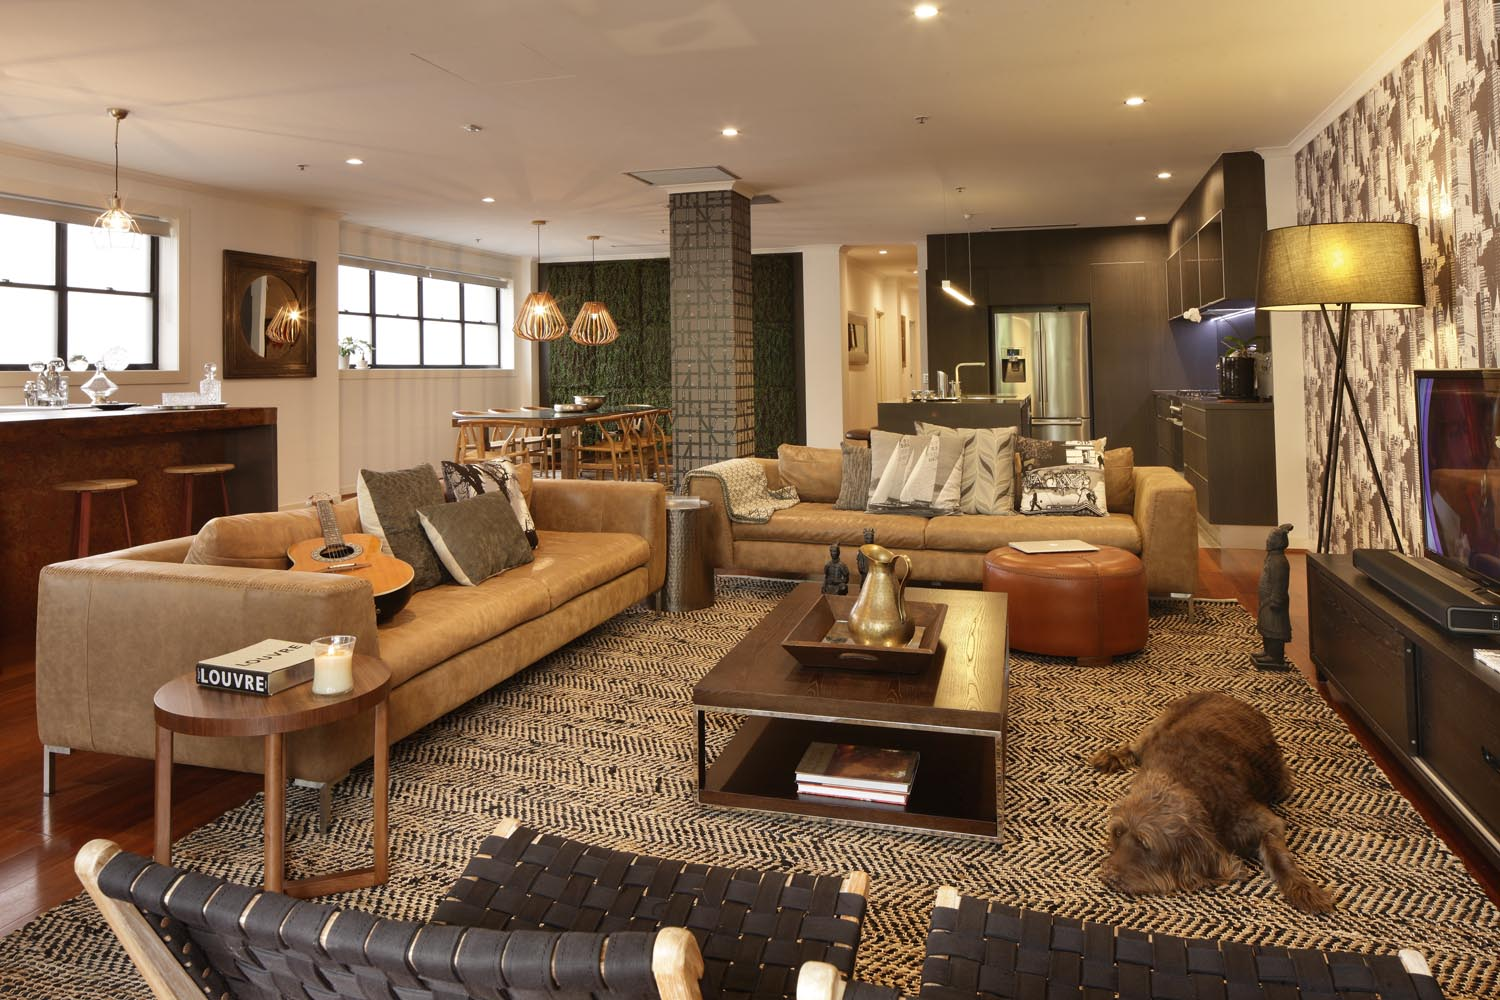 Expert tip: The striking contrast between the wallpaper and rug adds texture and drama to the space